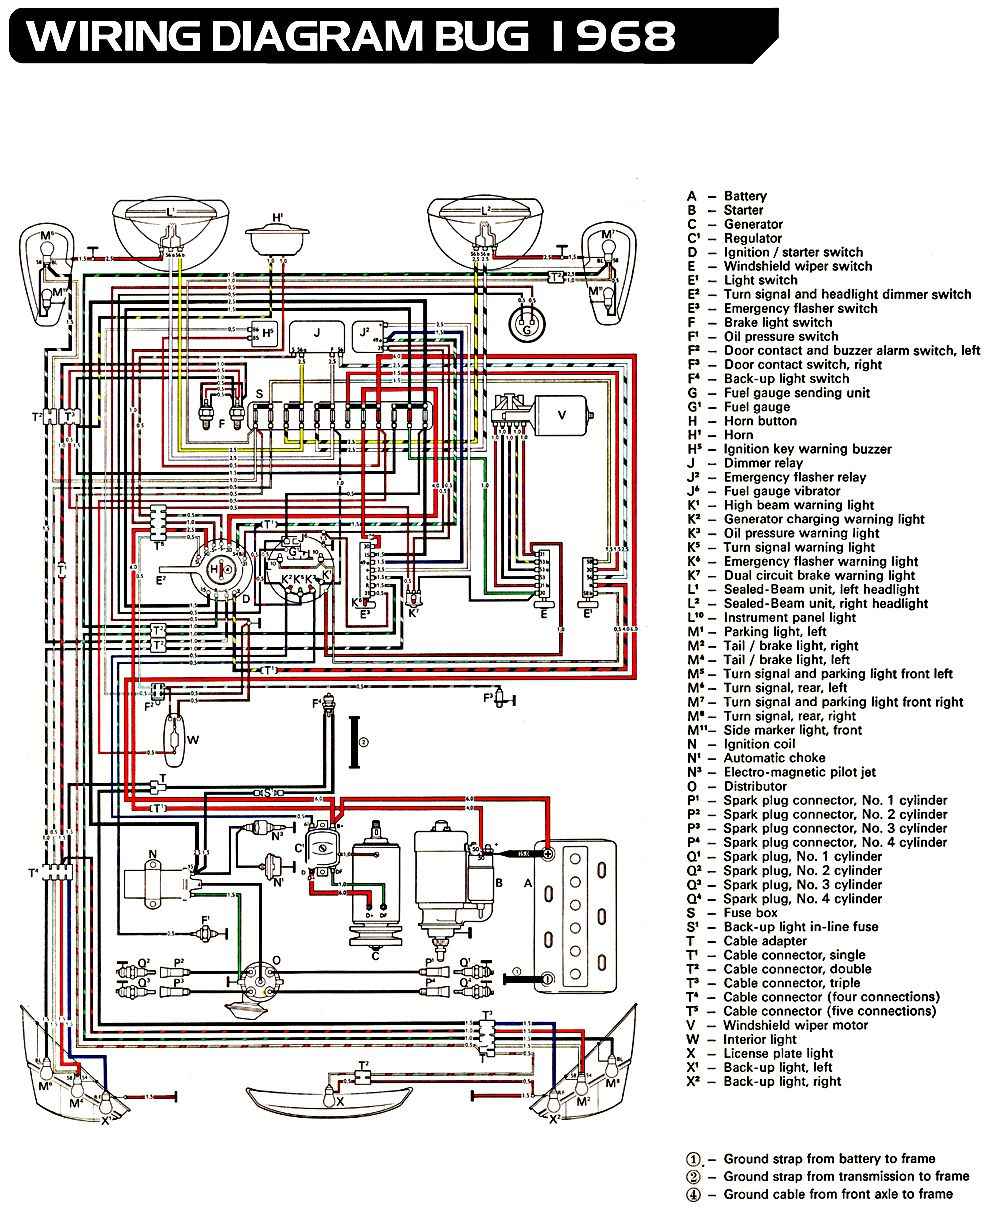 vw beetle ignition wiring diagram detailed schematics diagram rh  highcliffemedicalcentre com 1971 vw bus engine diagram